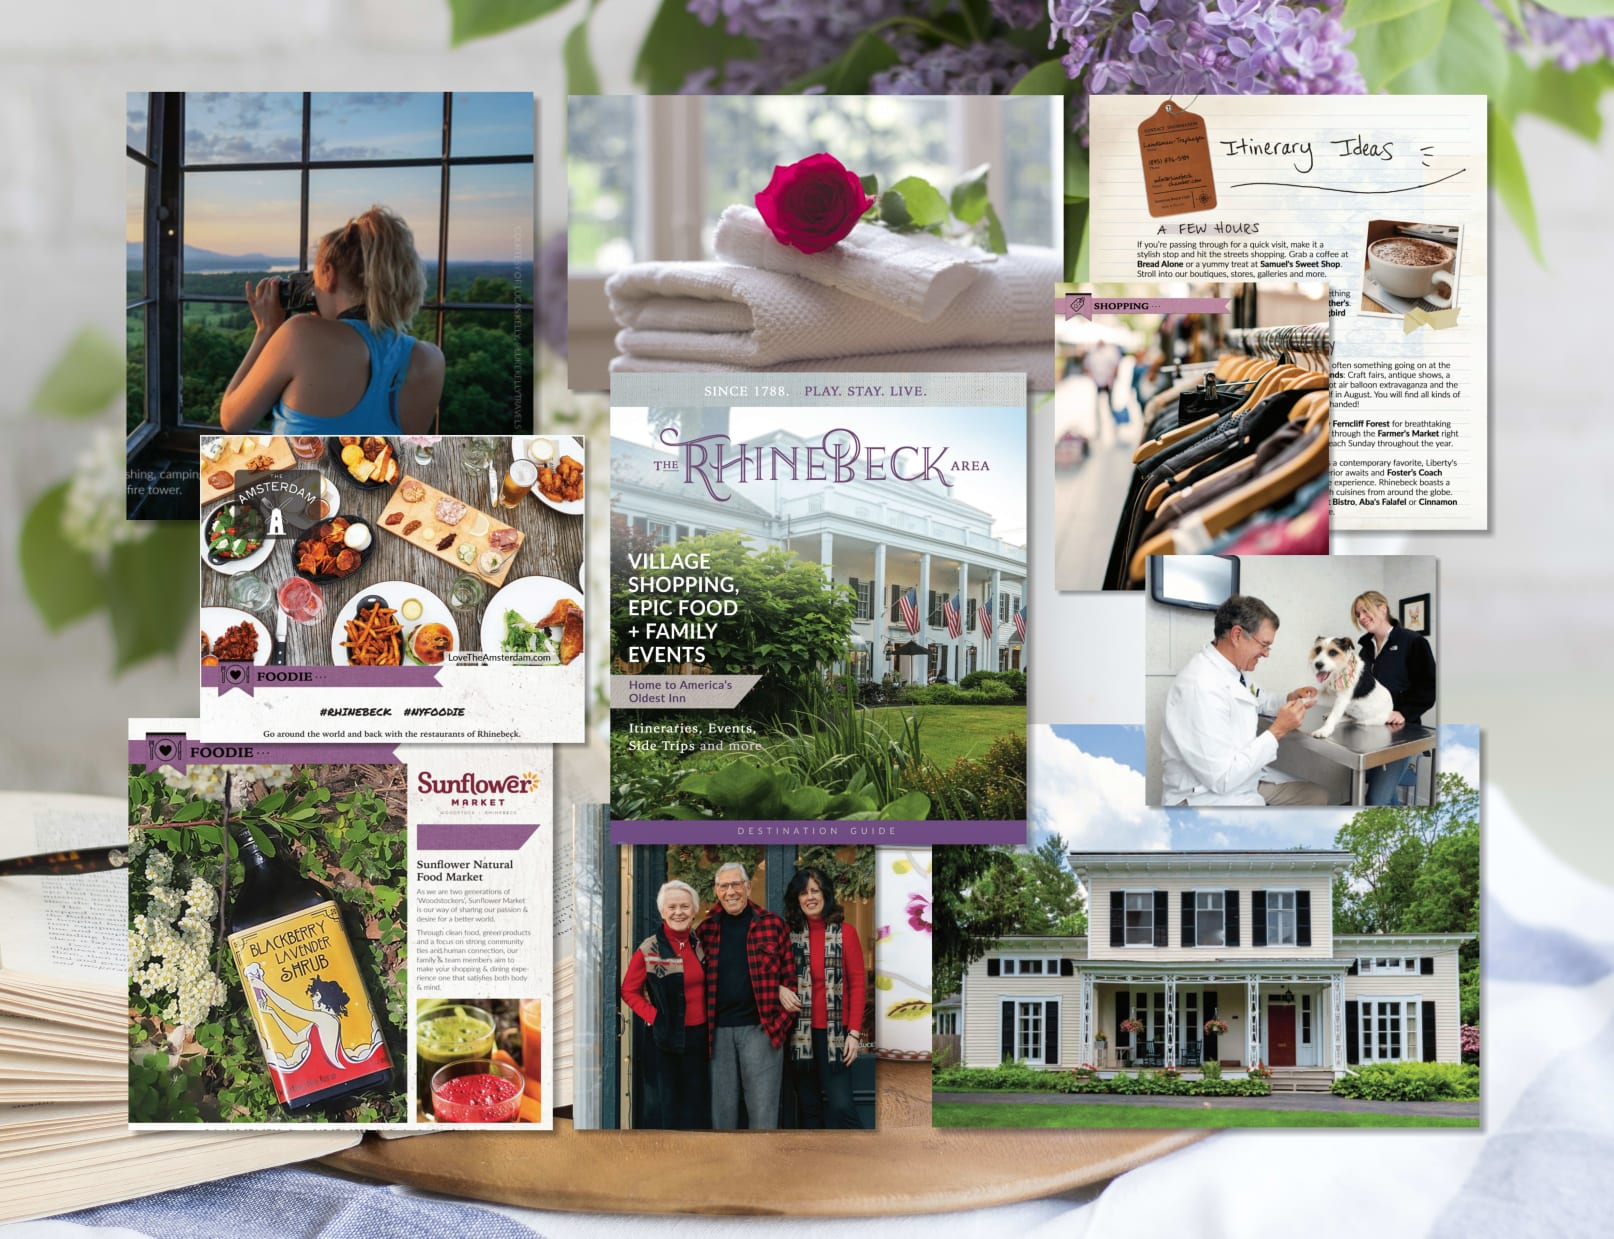 Our new Rhinebeck destination guide